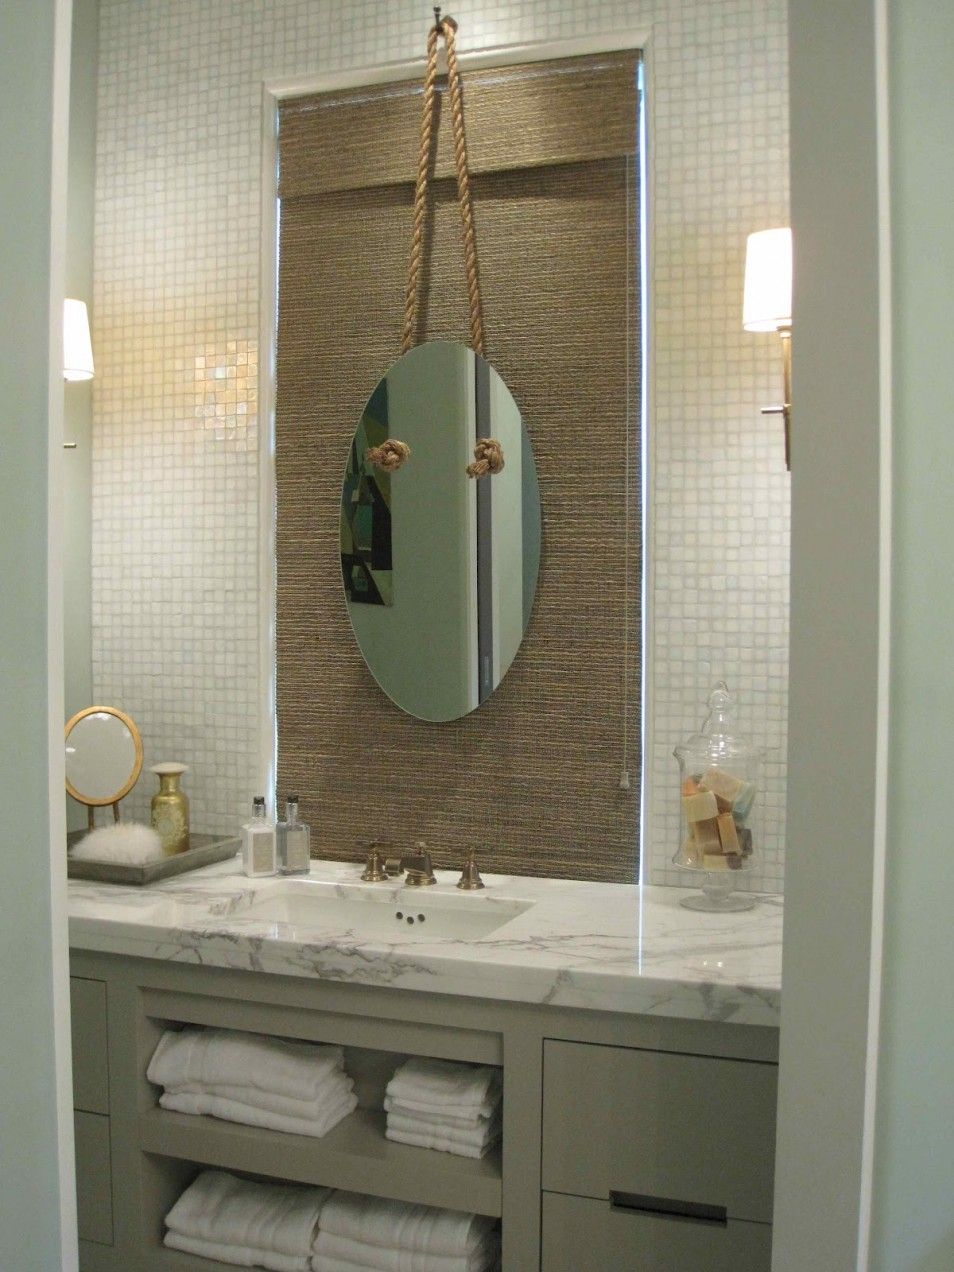 Elegant Coastal Bathroom Decor Ideas In Small Cottage Design